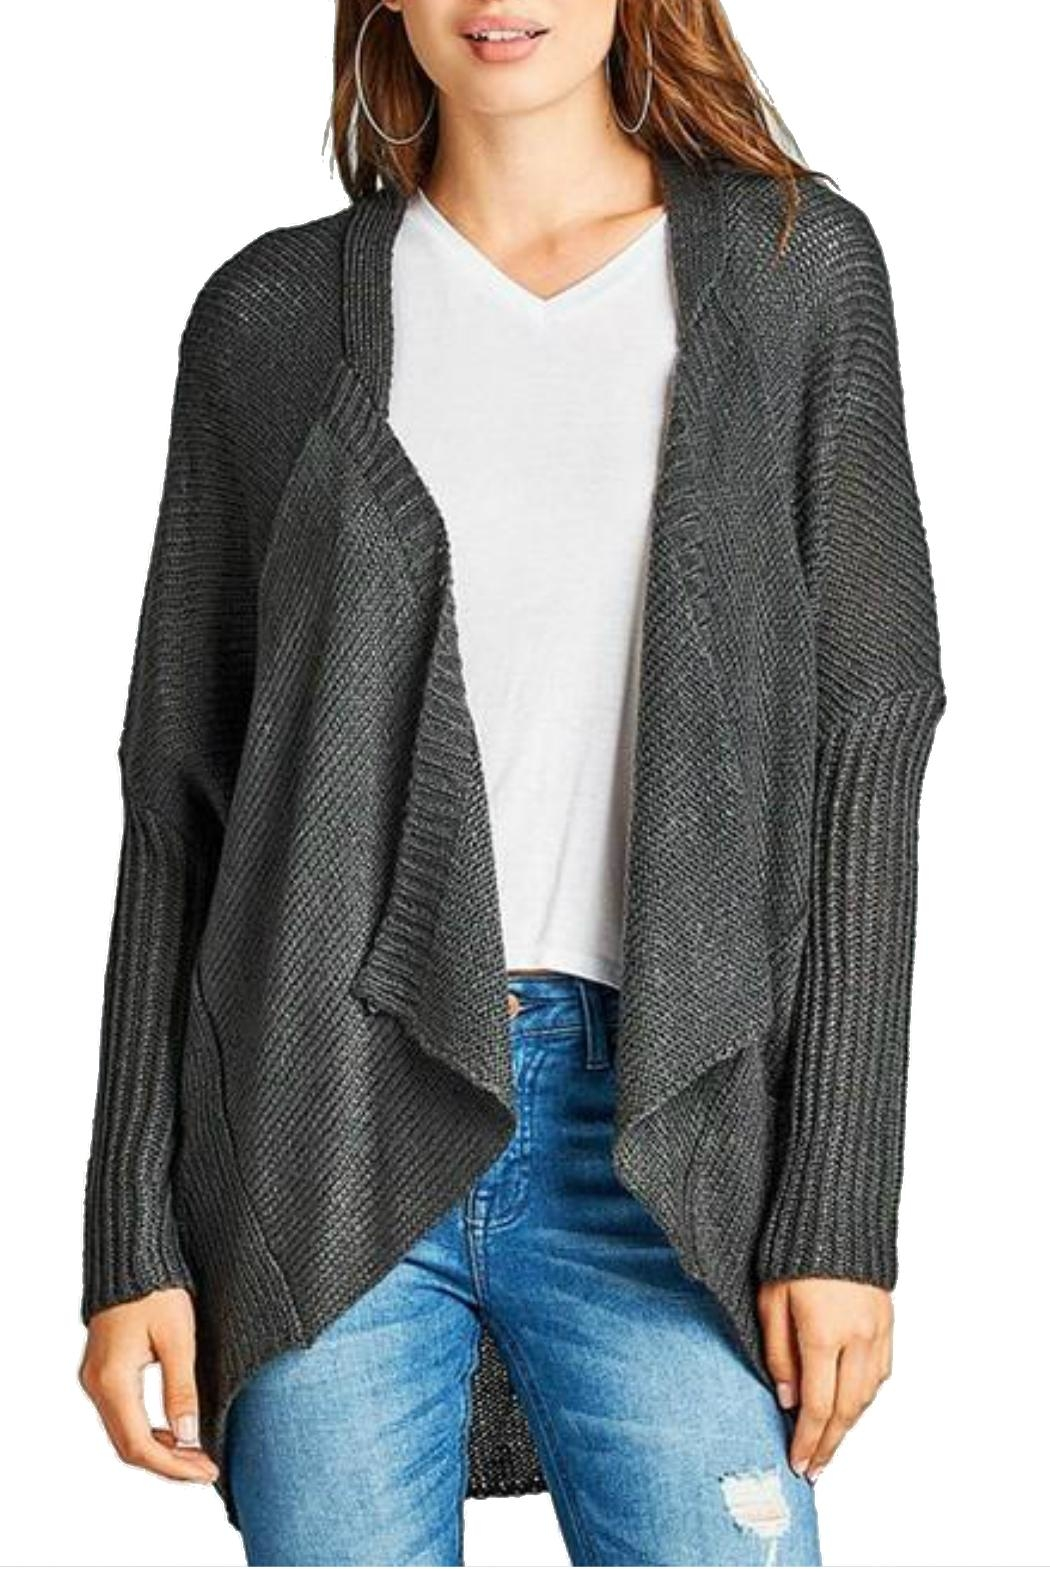 Minx Knit Cascade Cardigan from California by MINX — Shoptiques